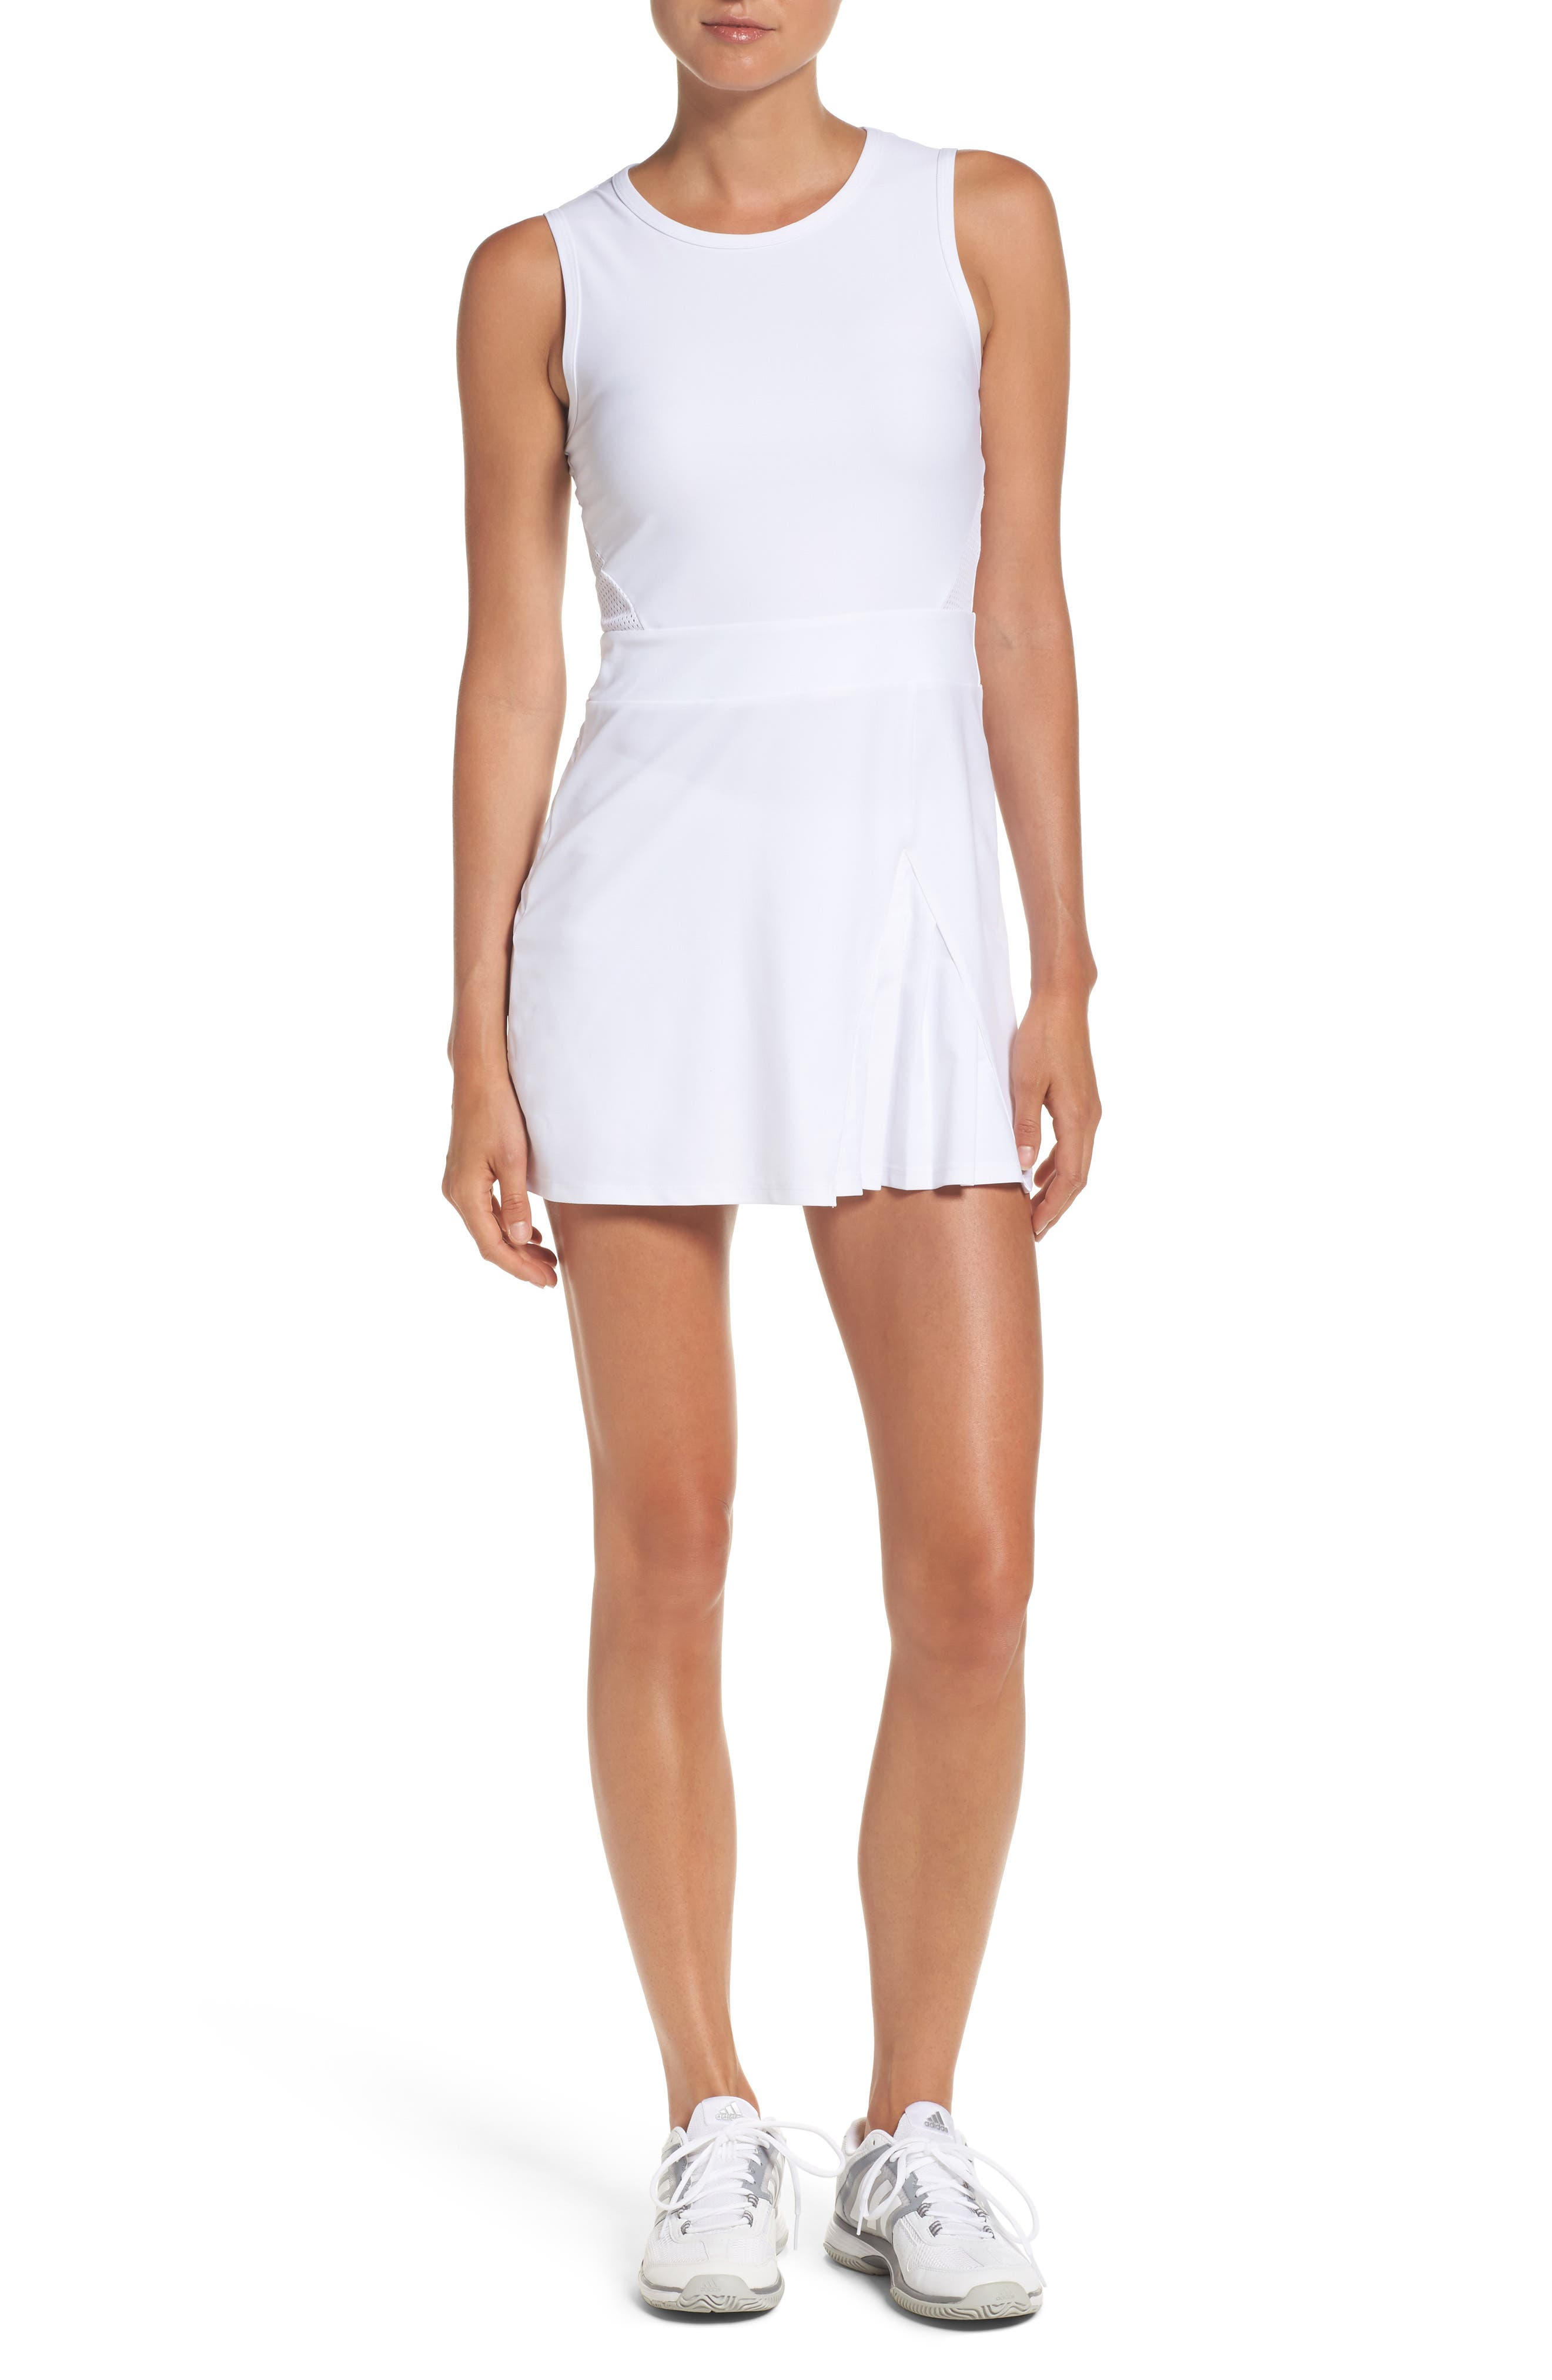 BoomBoom Athletica Tennis Dress & Shorts,                         Main,                         color, White